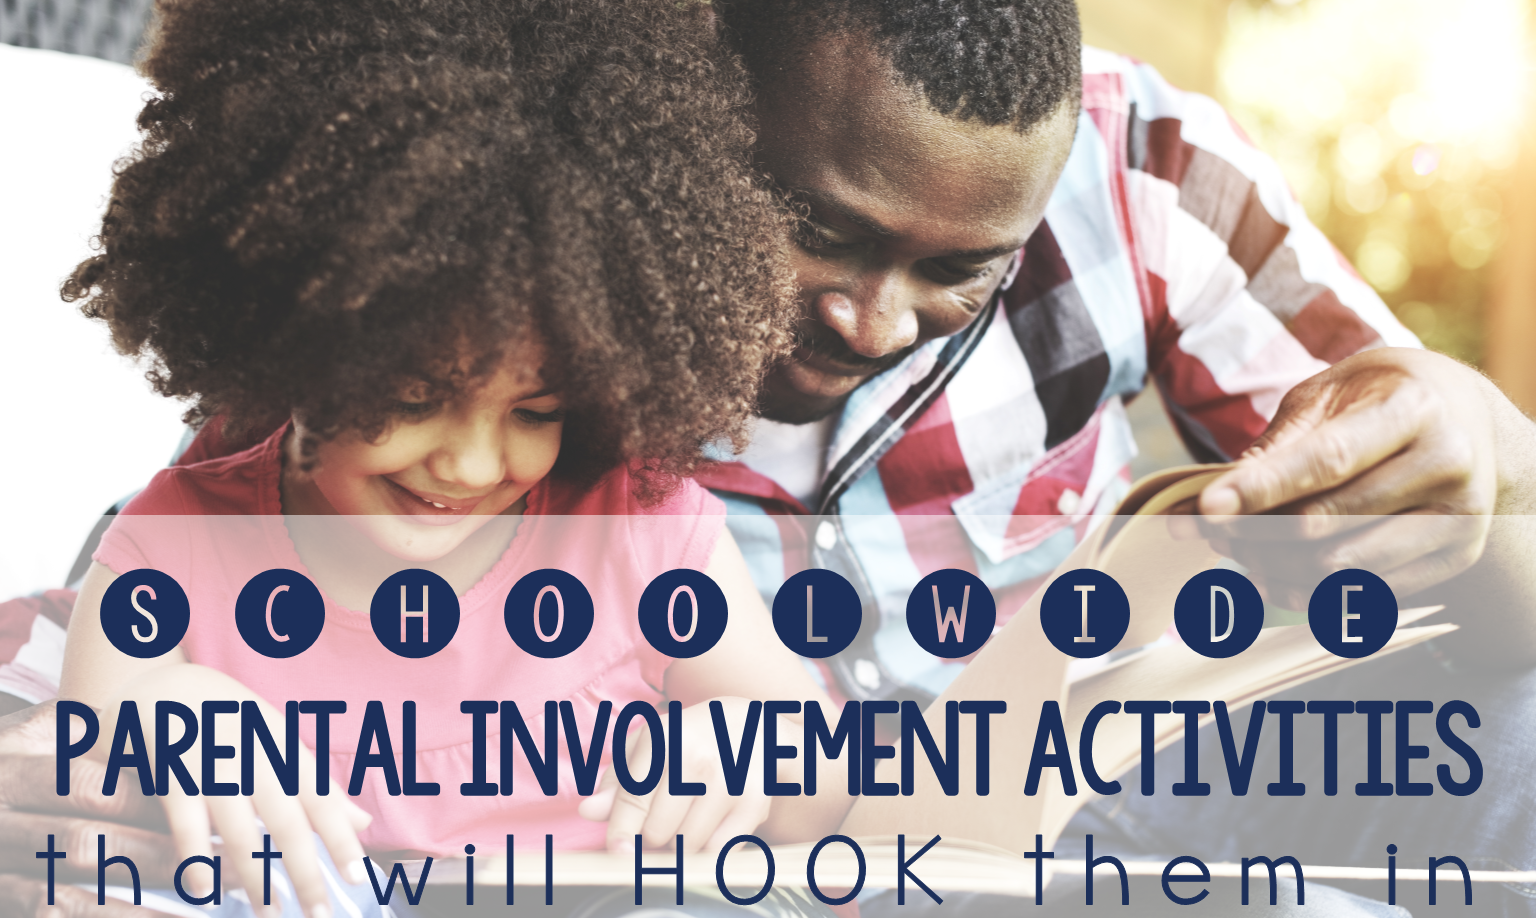 Looking for schoolwide parental involvement ideas? Check out this post for five ideas that will be a hit with all of your families.